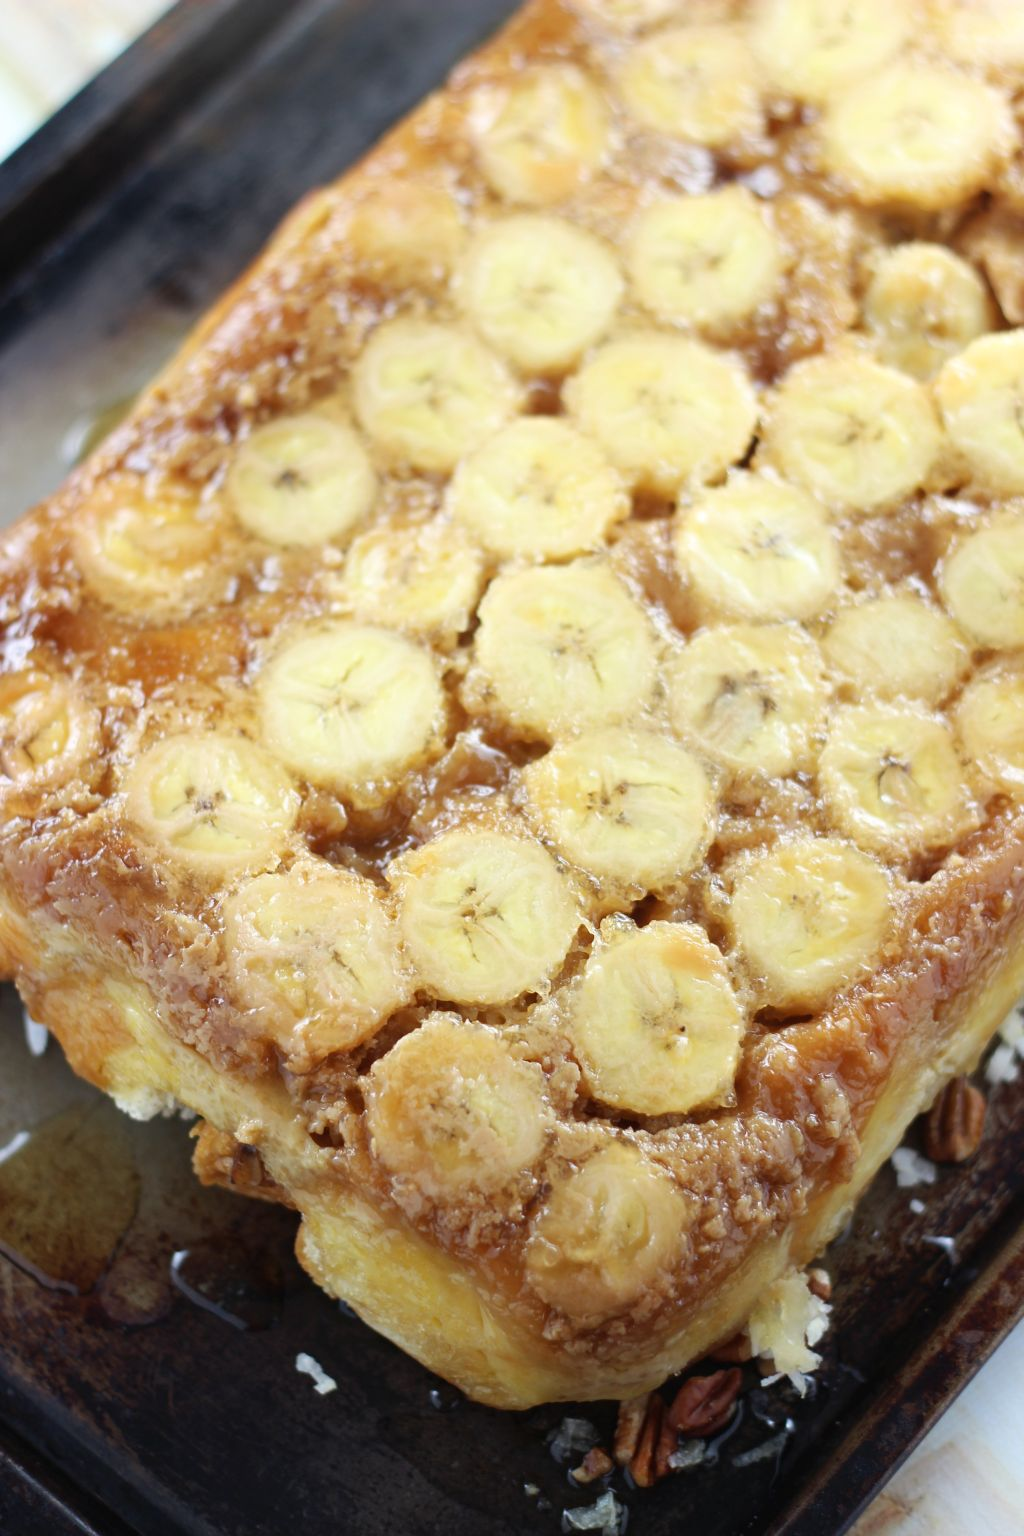 Starting With Sharing This Incredible Coconut Rum Banana Upside Down Croissant  French Toast Casserole The Title… Sorry It's A Mouthful, But I Think All  Of